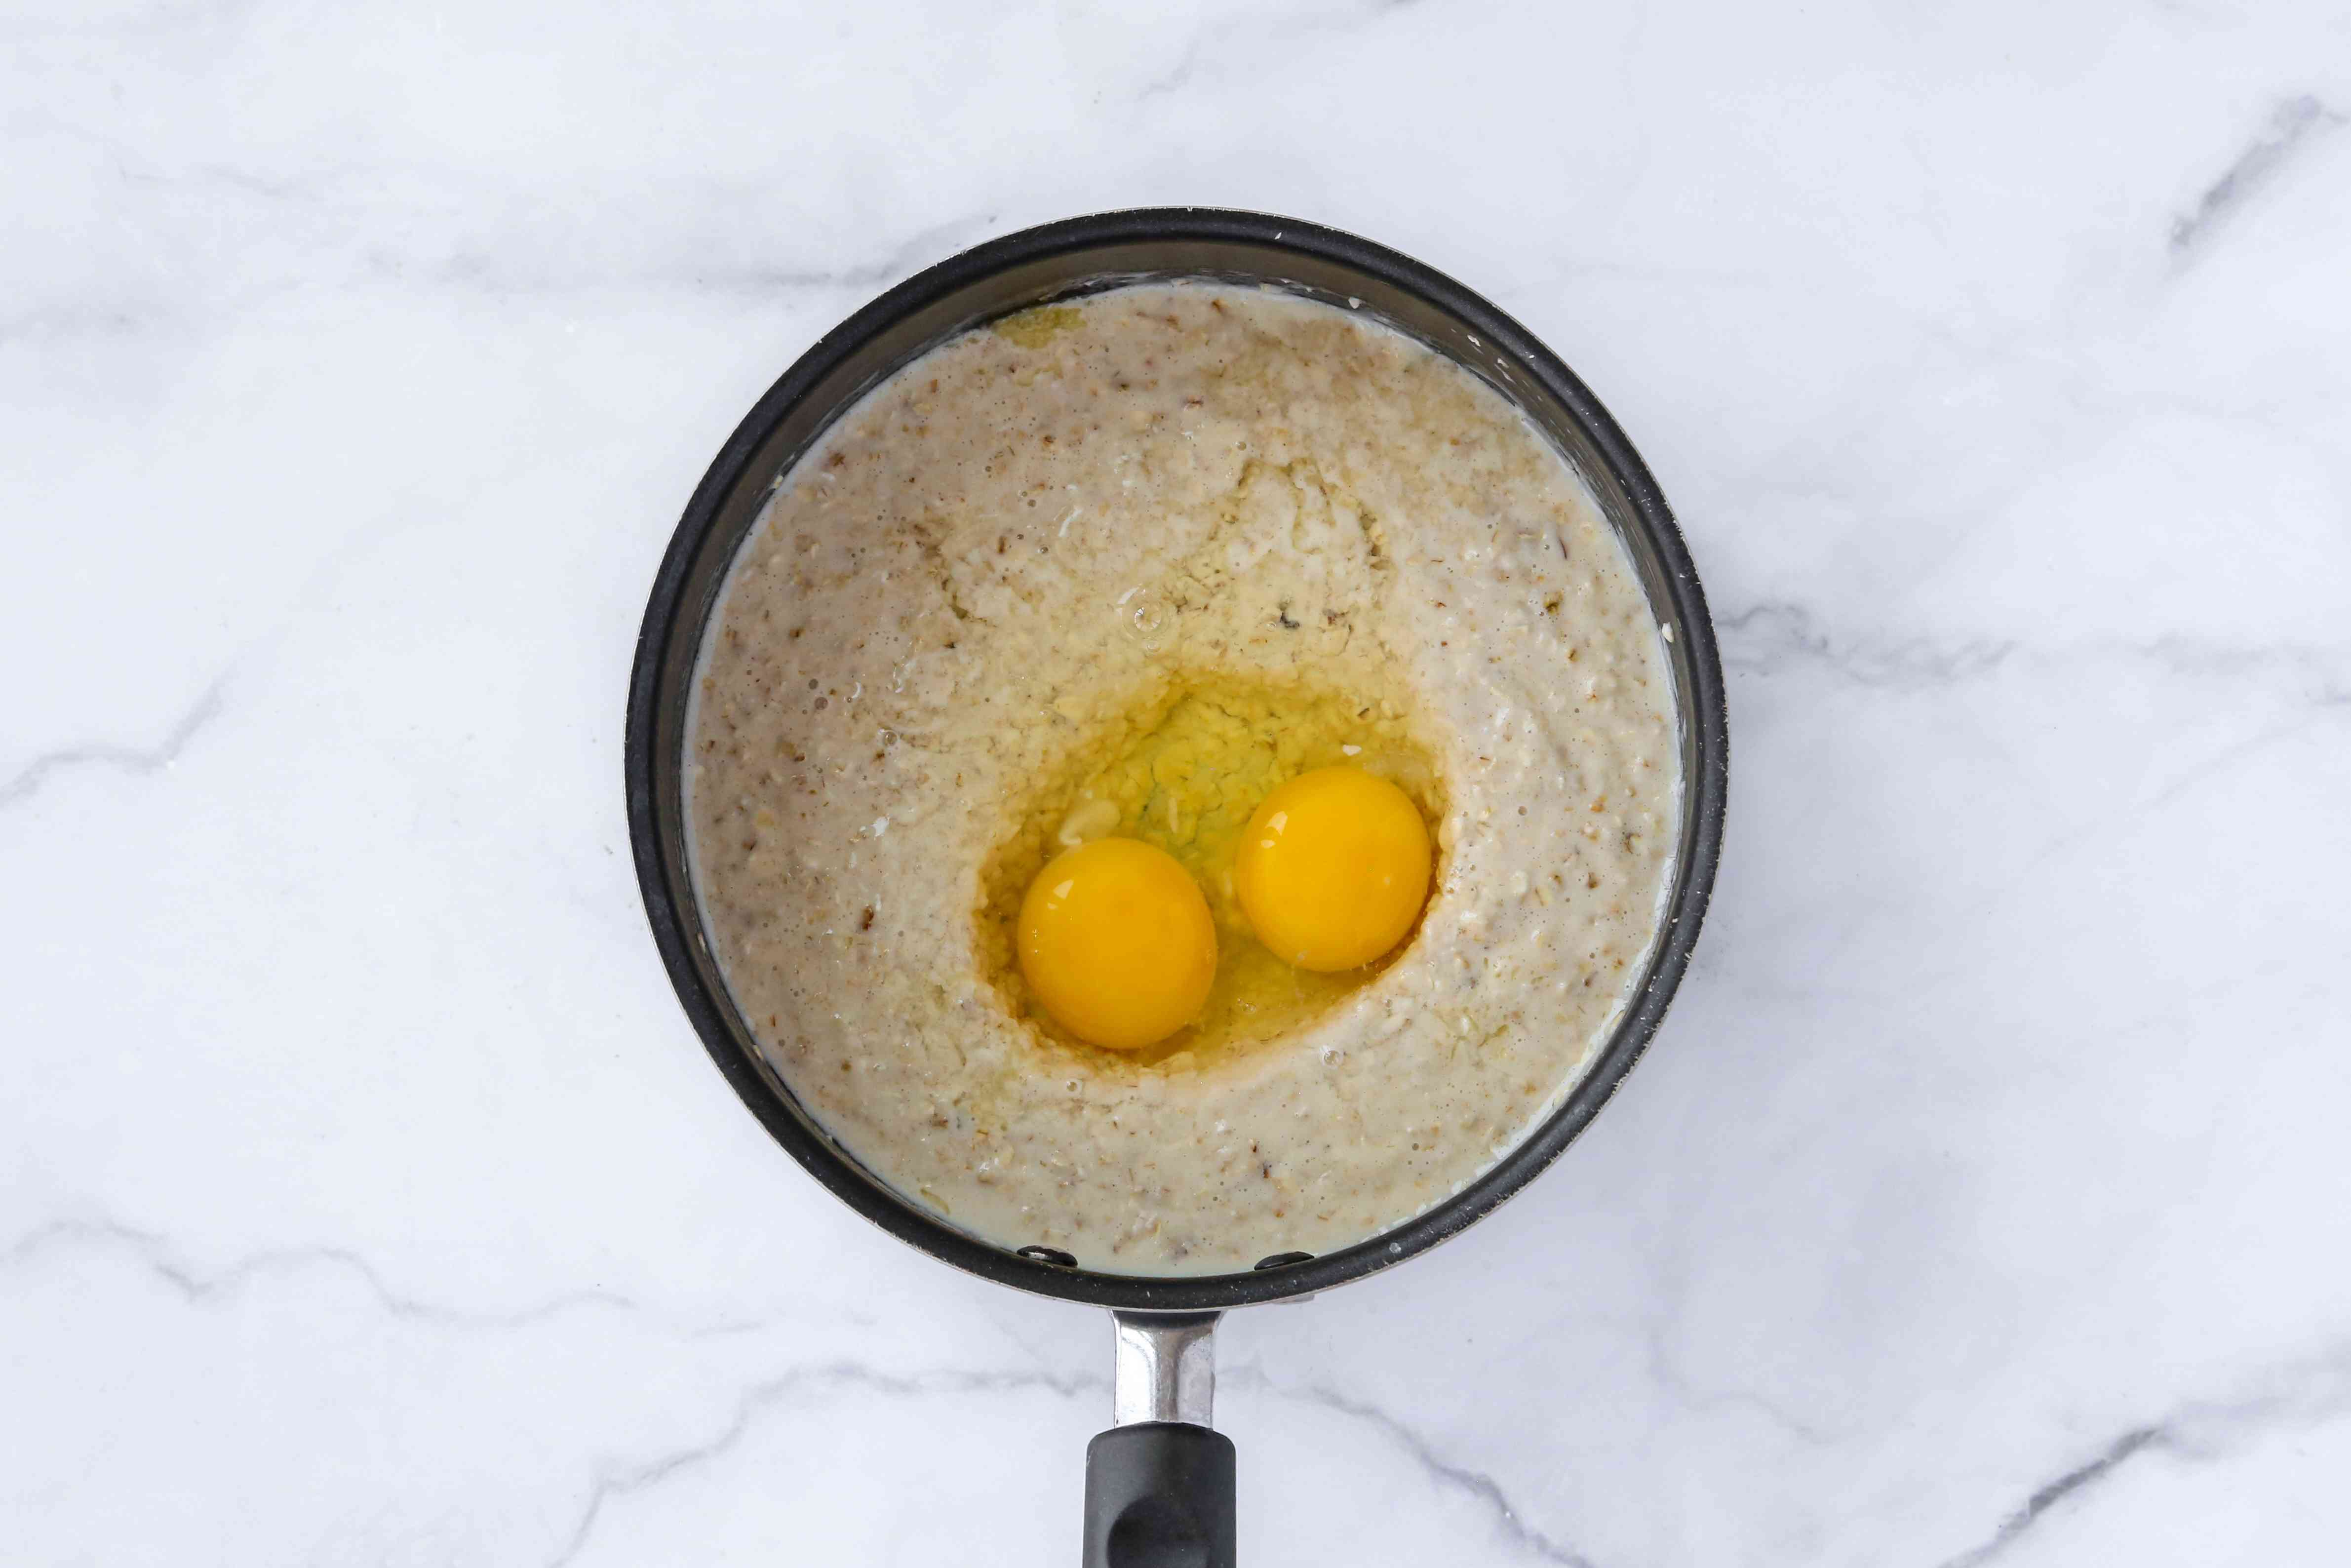 eggs added to the oatmeal mixture in the saucepan